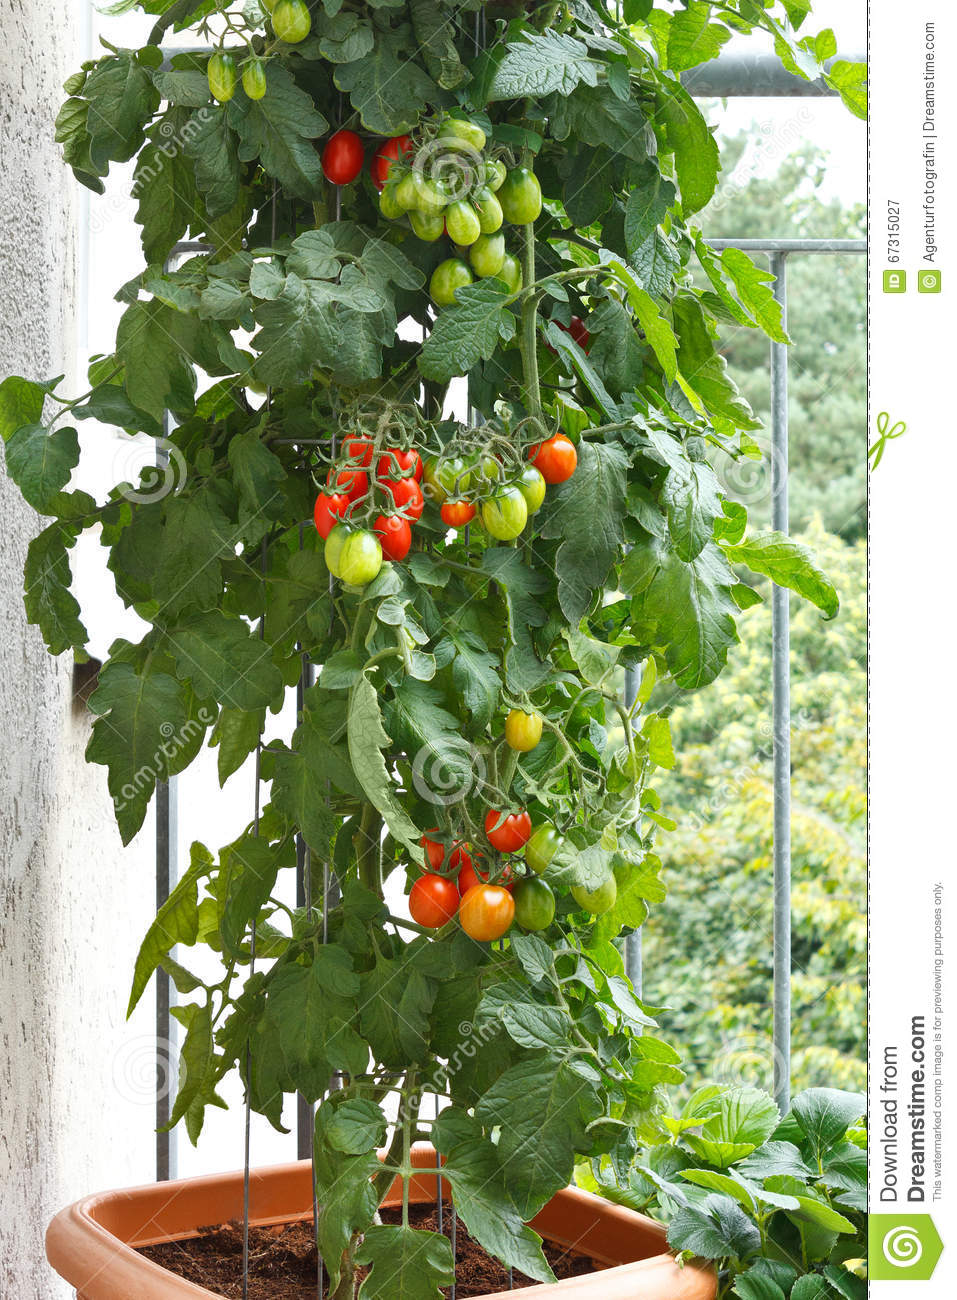 tomato plant pot balcony tomatoes stock image image of farming health 67315027. Black Bedroom Furniture Sets. Home Design Ideas